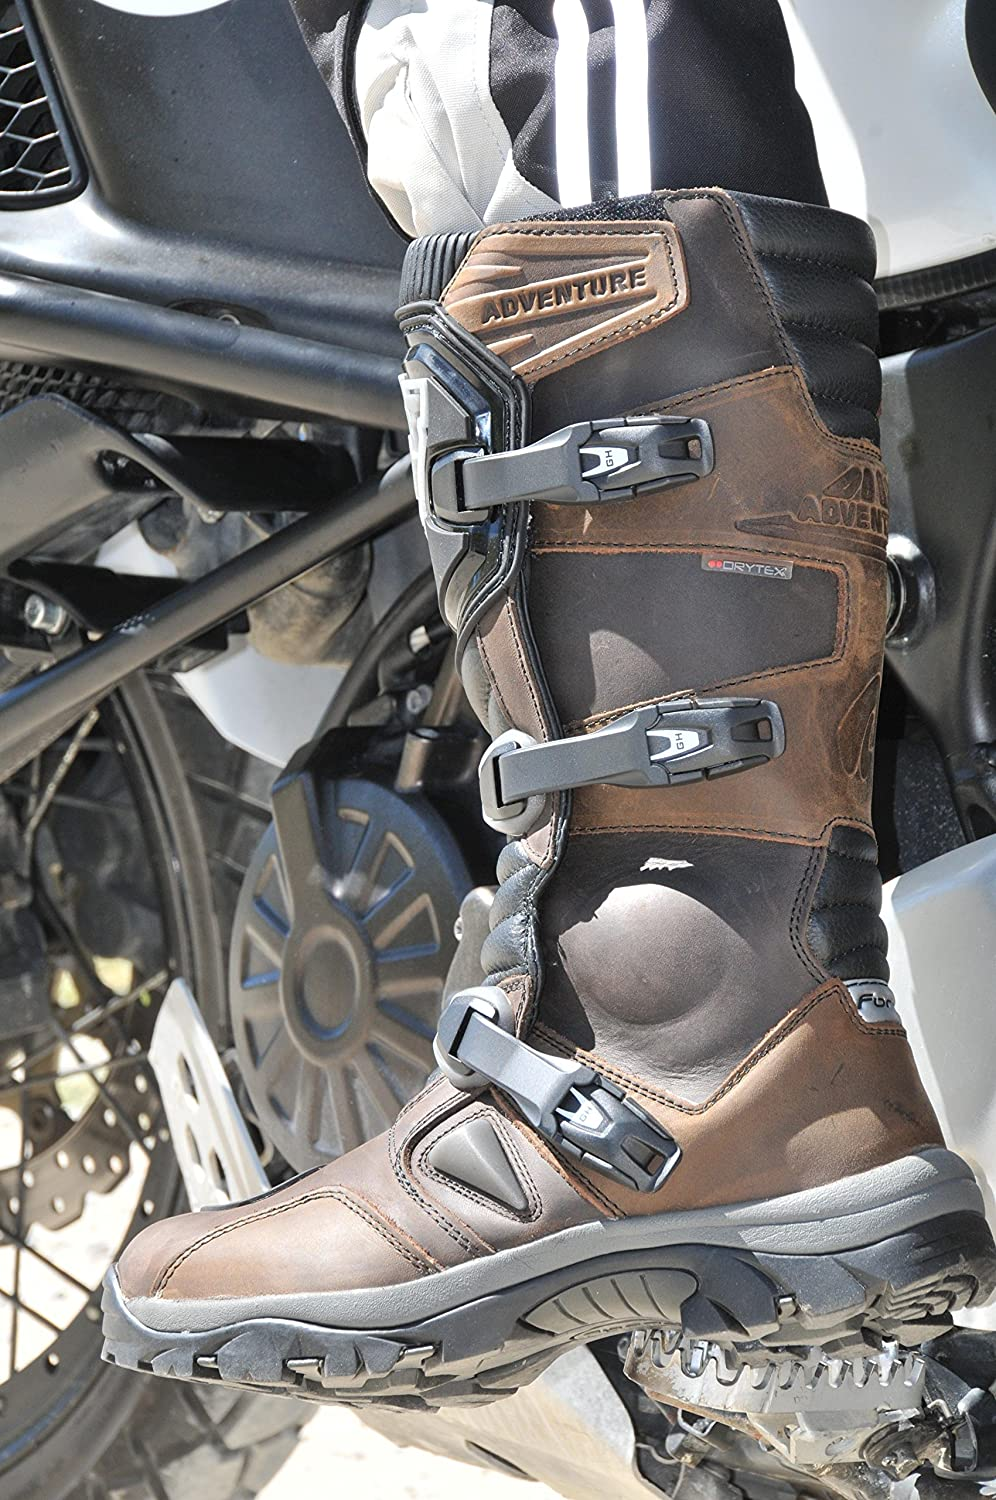 43 Black Forma/ Motorcycle Boots Adventure WP CE Approved